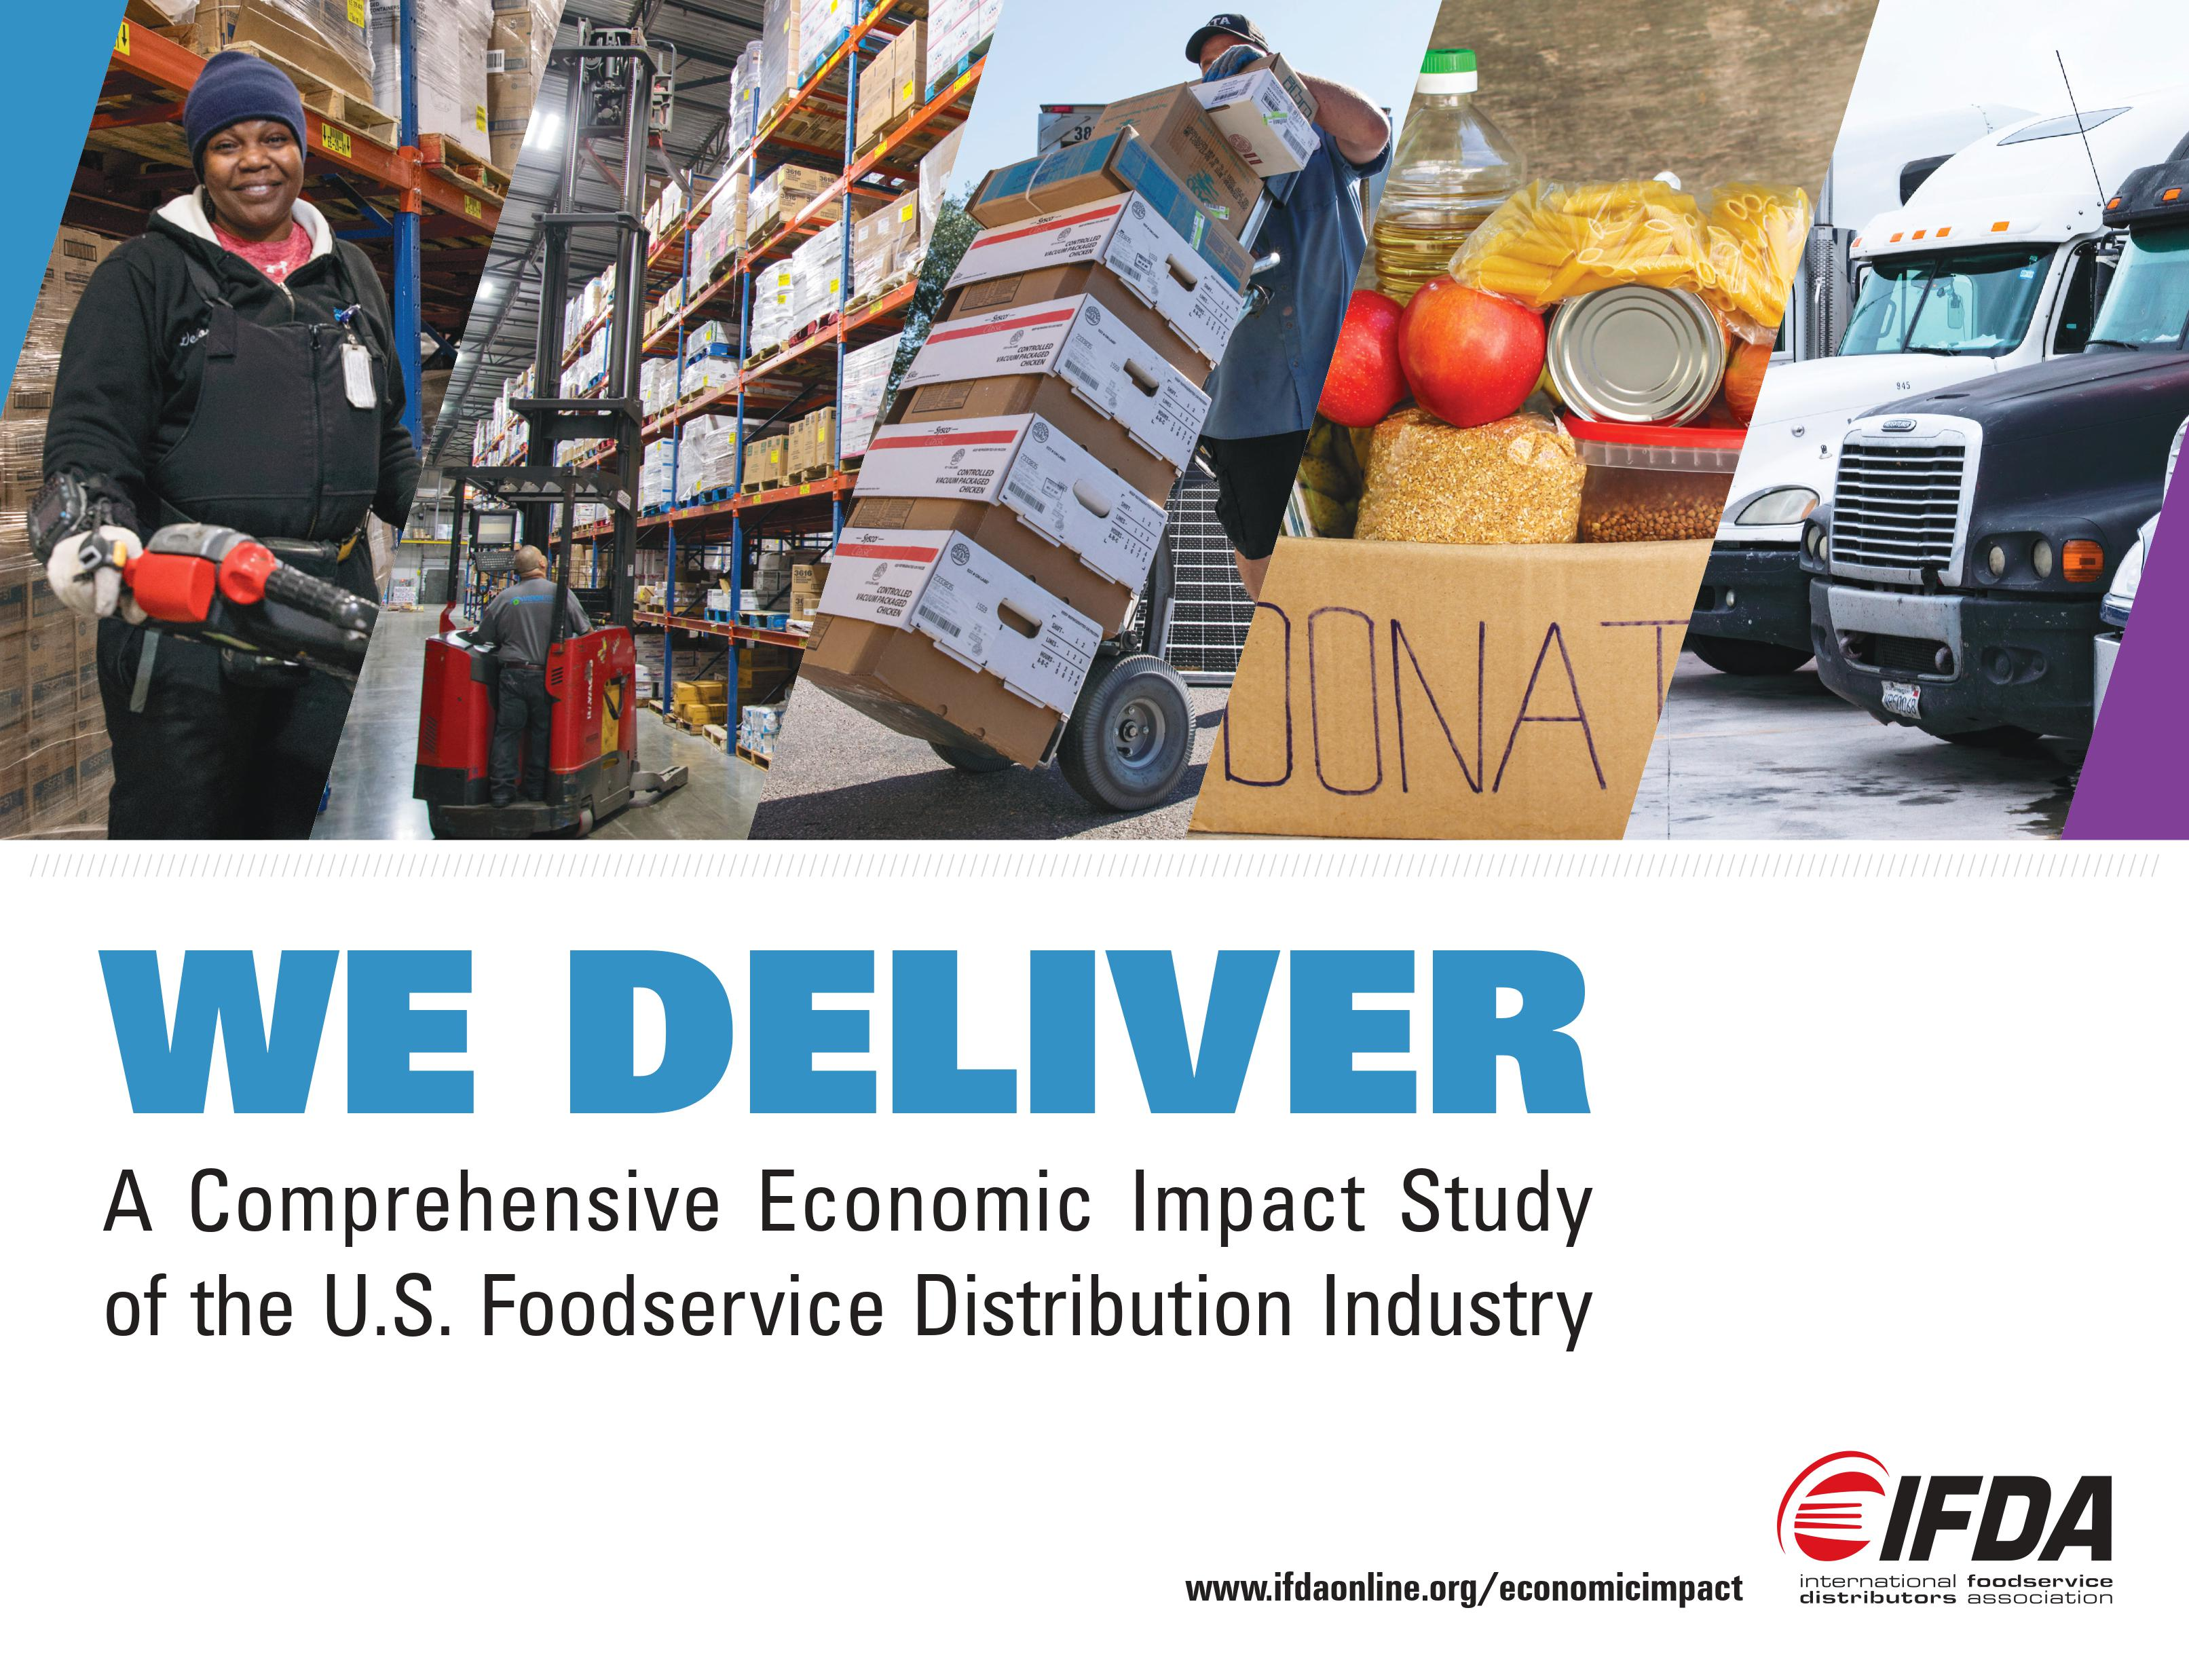 Foodservice Distribution Industry Economic Impact Study